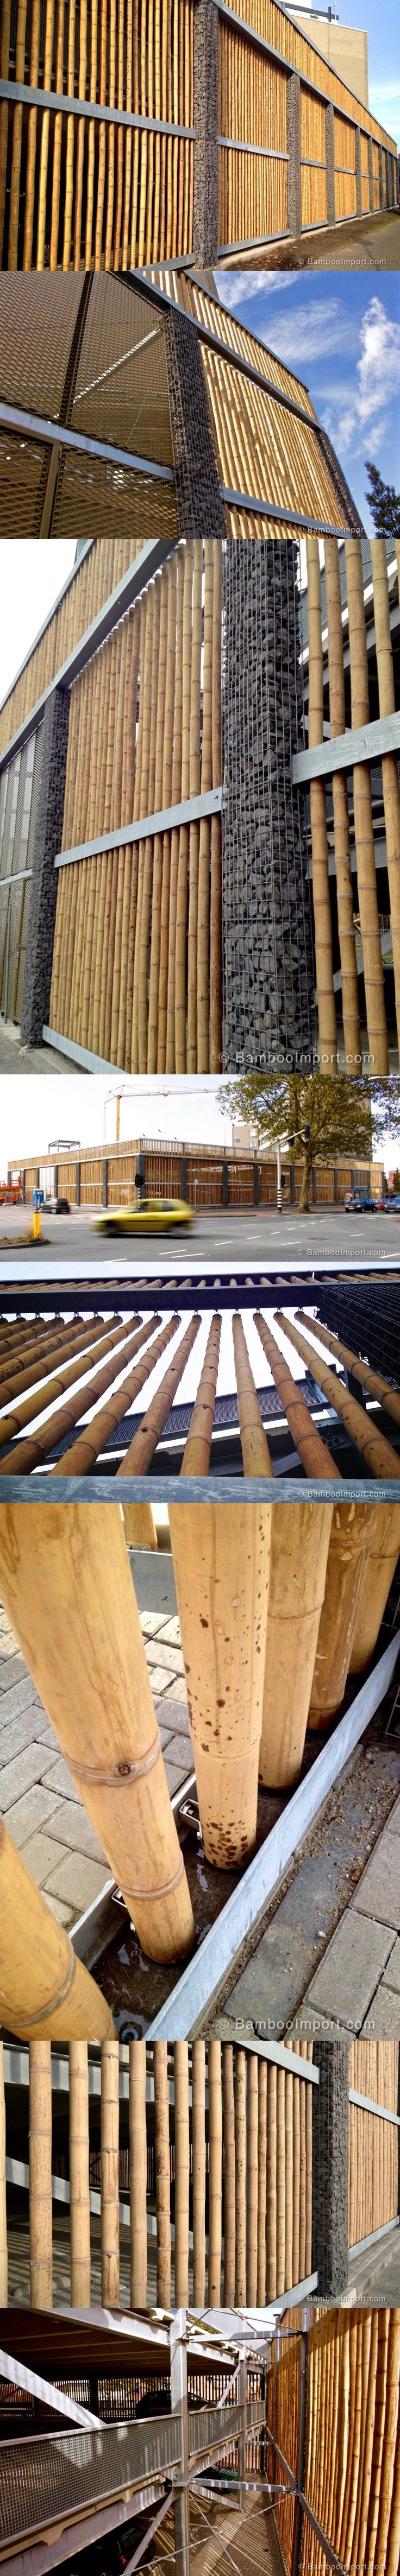 Bamboo Cladding for Parking Garage in The Hague, Holland.